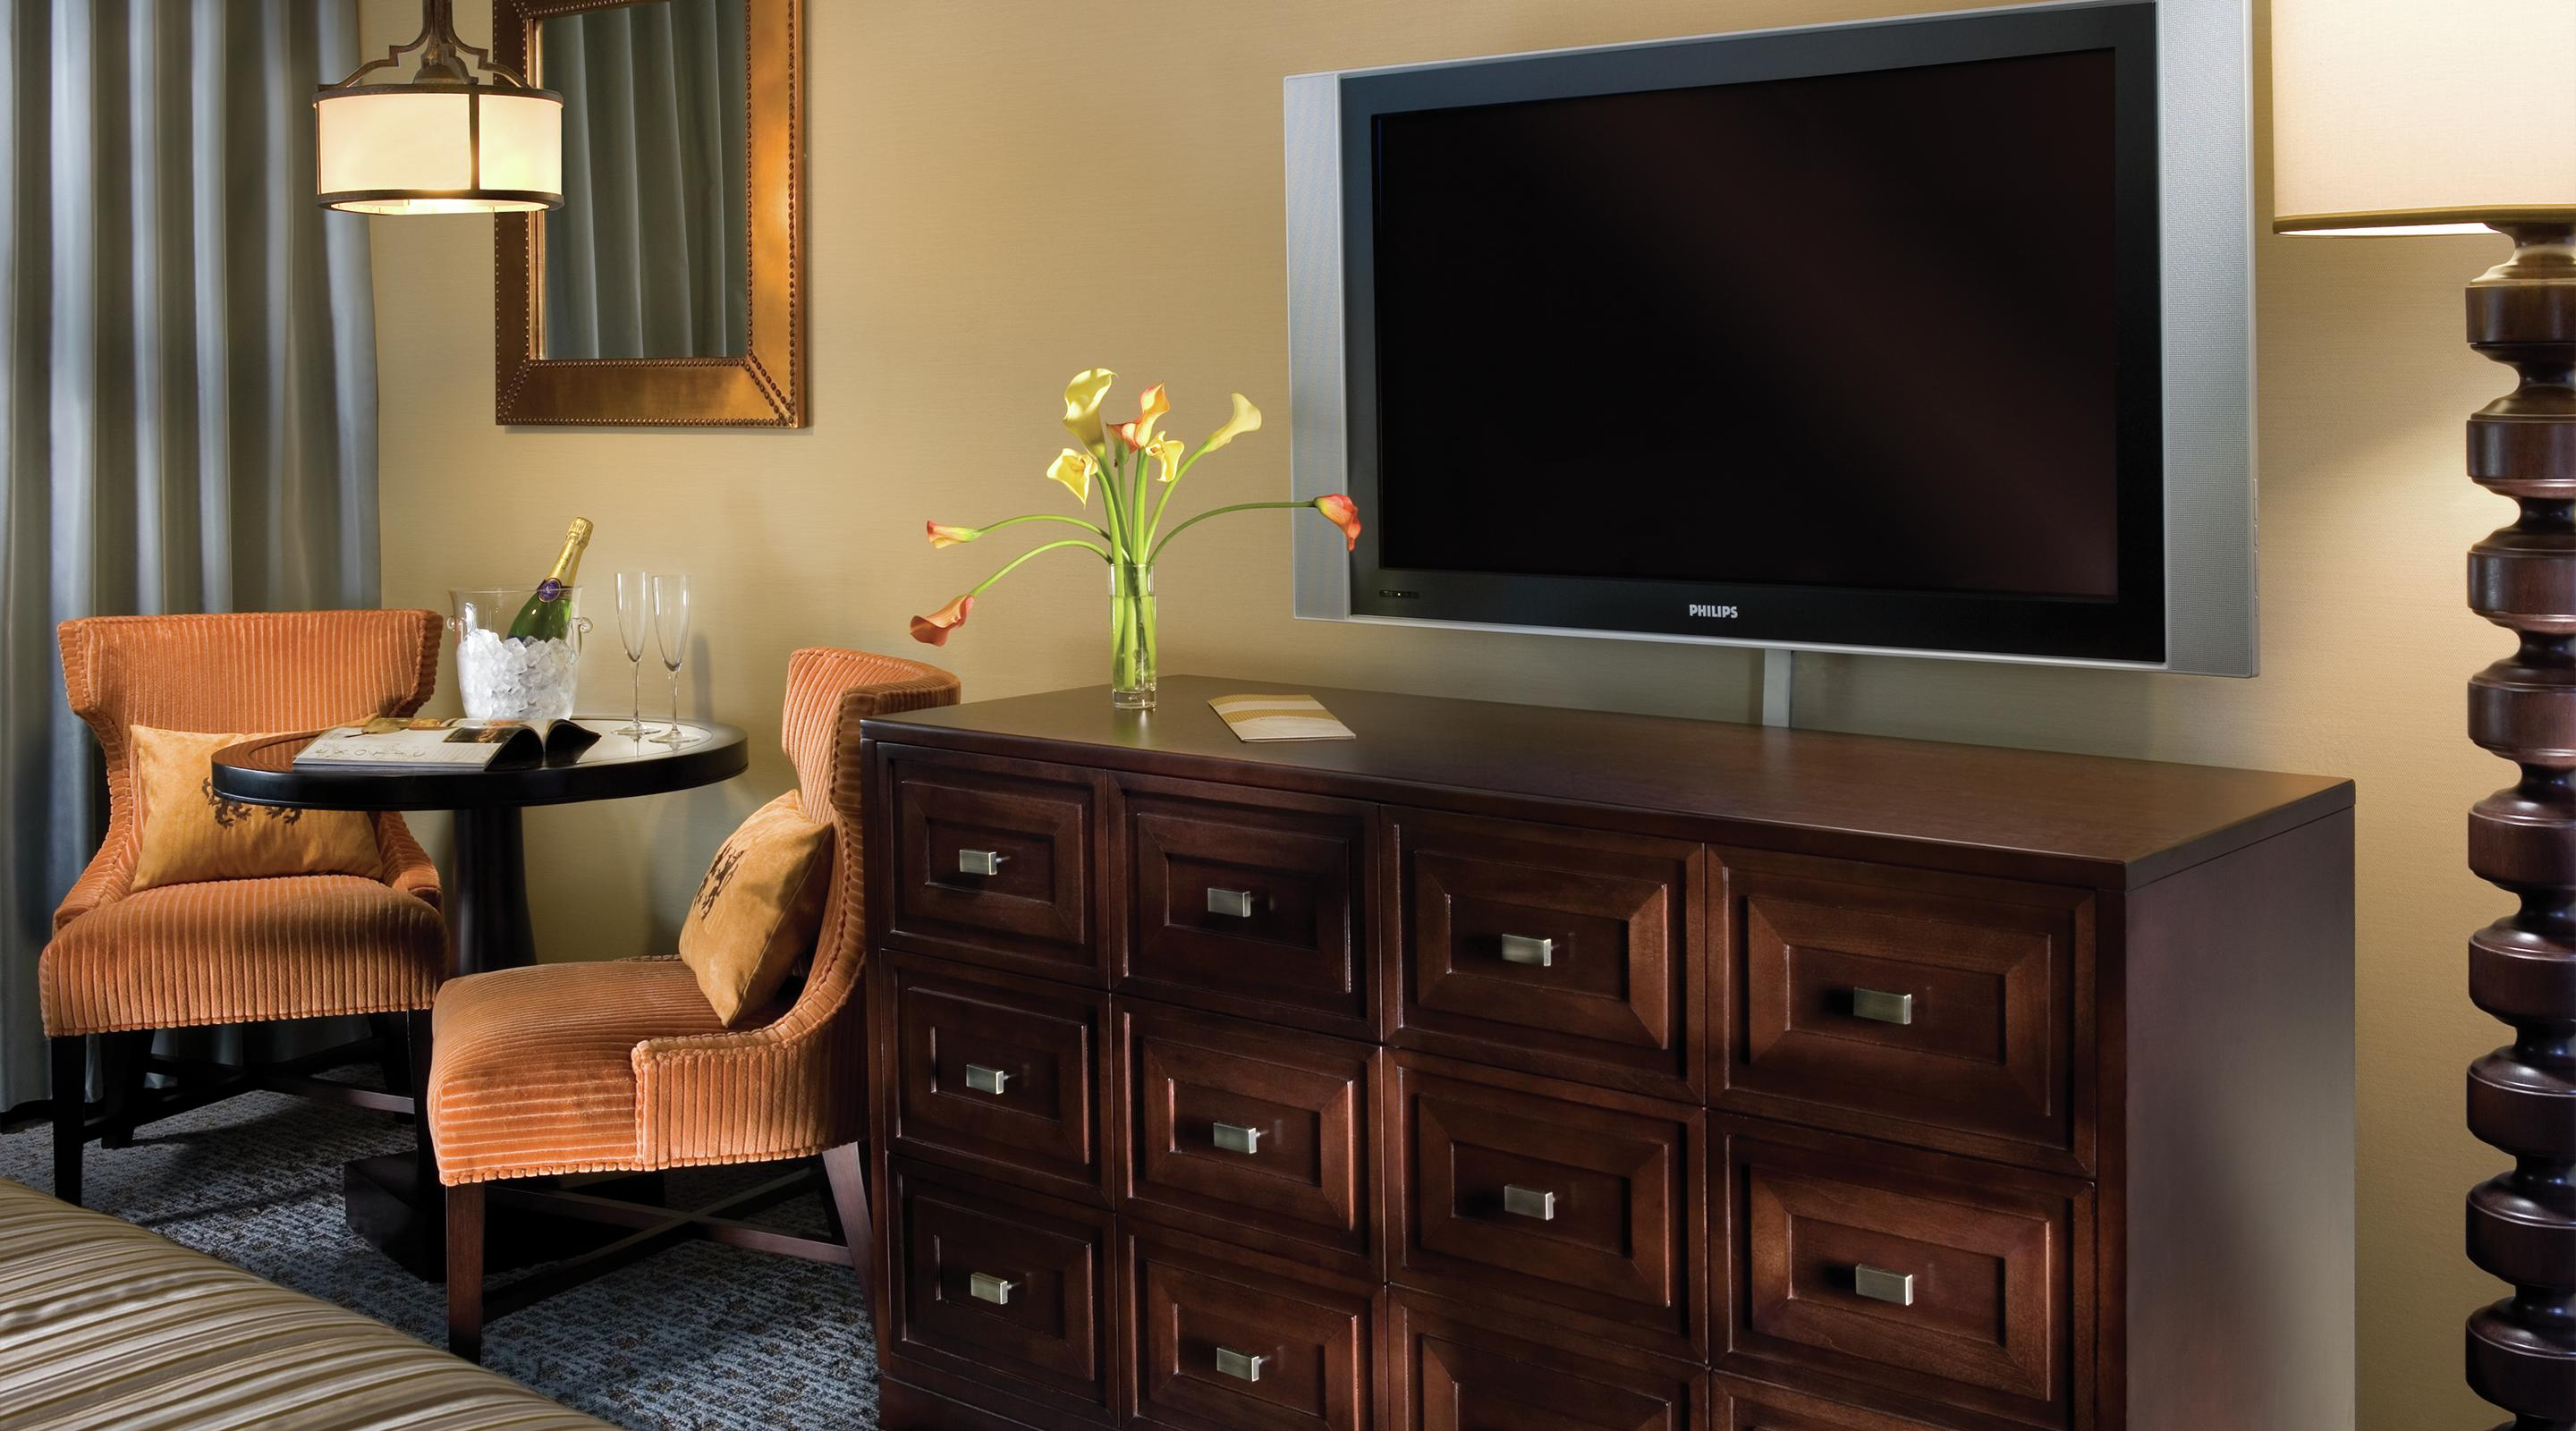 This is an image of the Resort Tower TV Set.